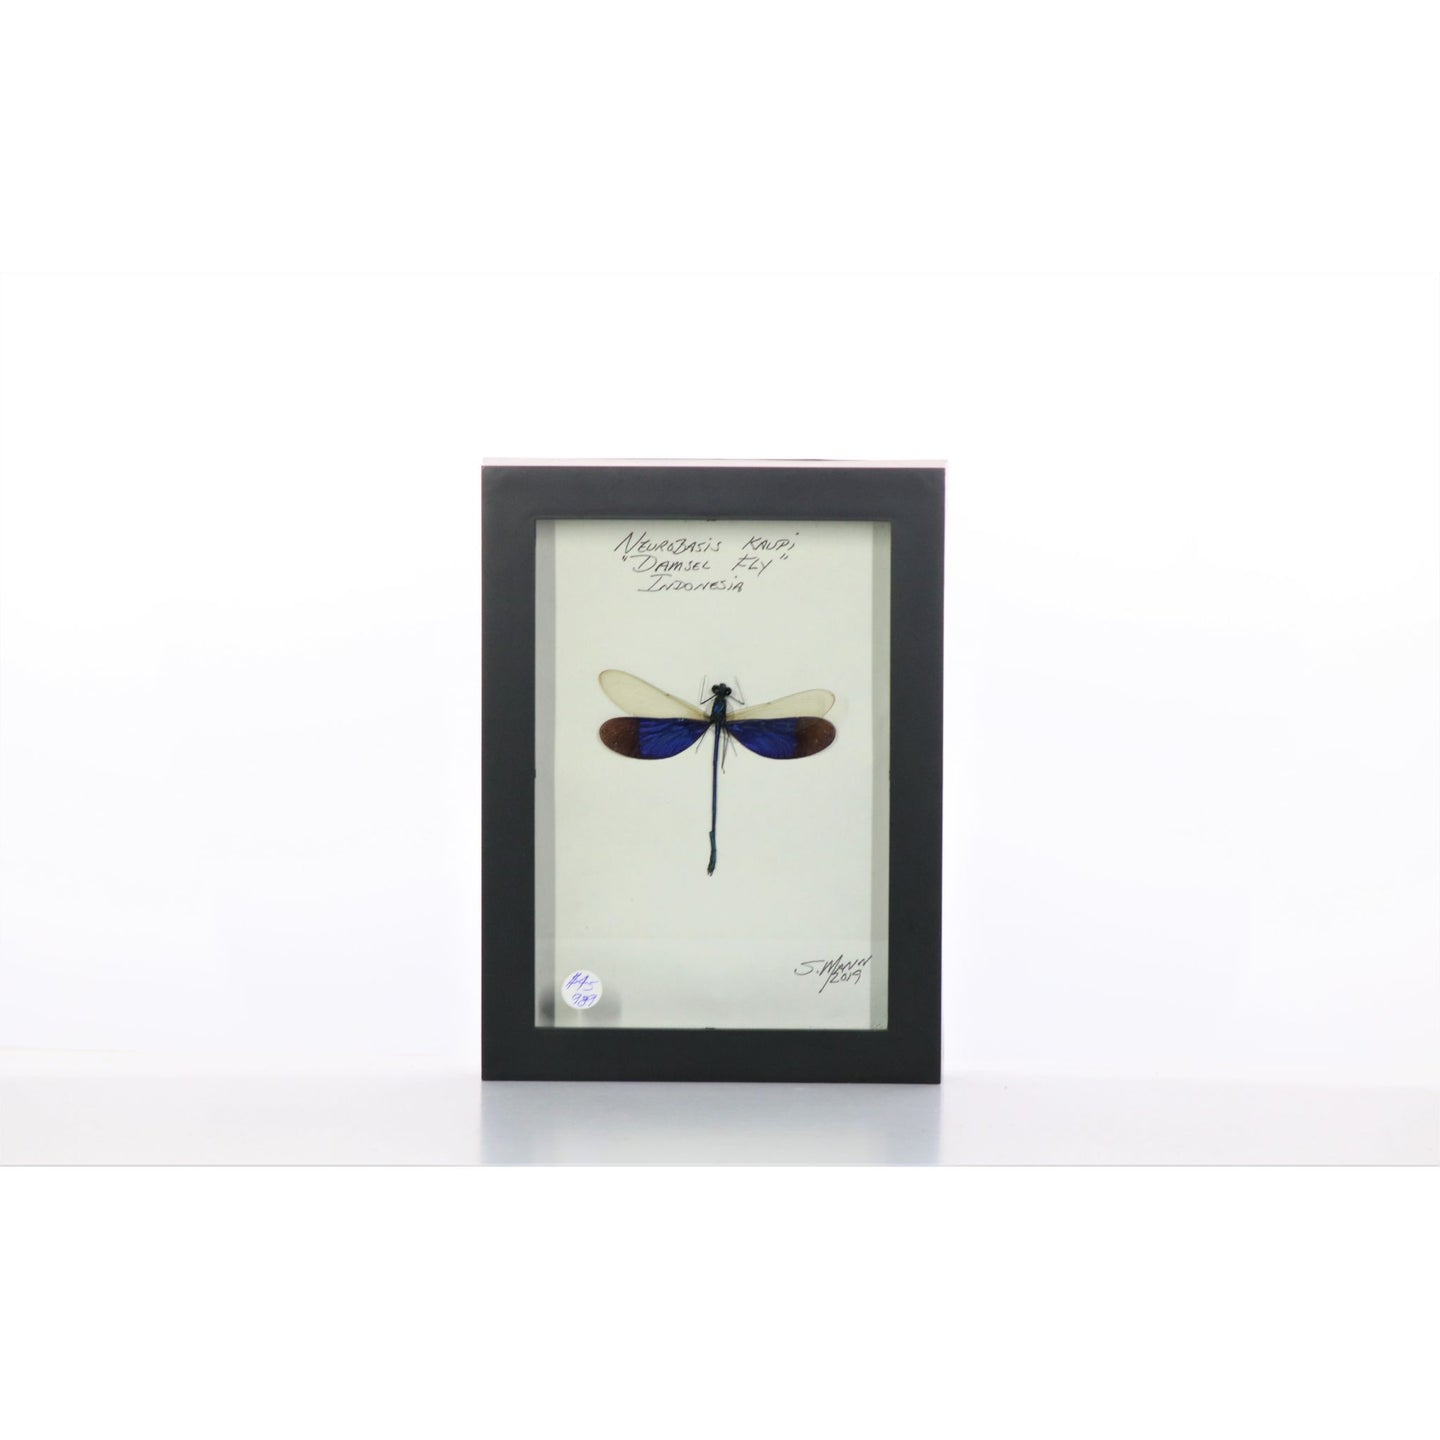 Damselfly White & Purple 5x7 Black #989 Framed Art - Insecta Etcetera